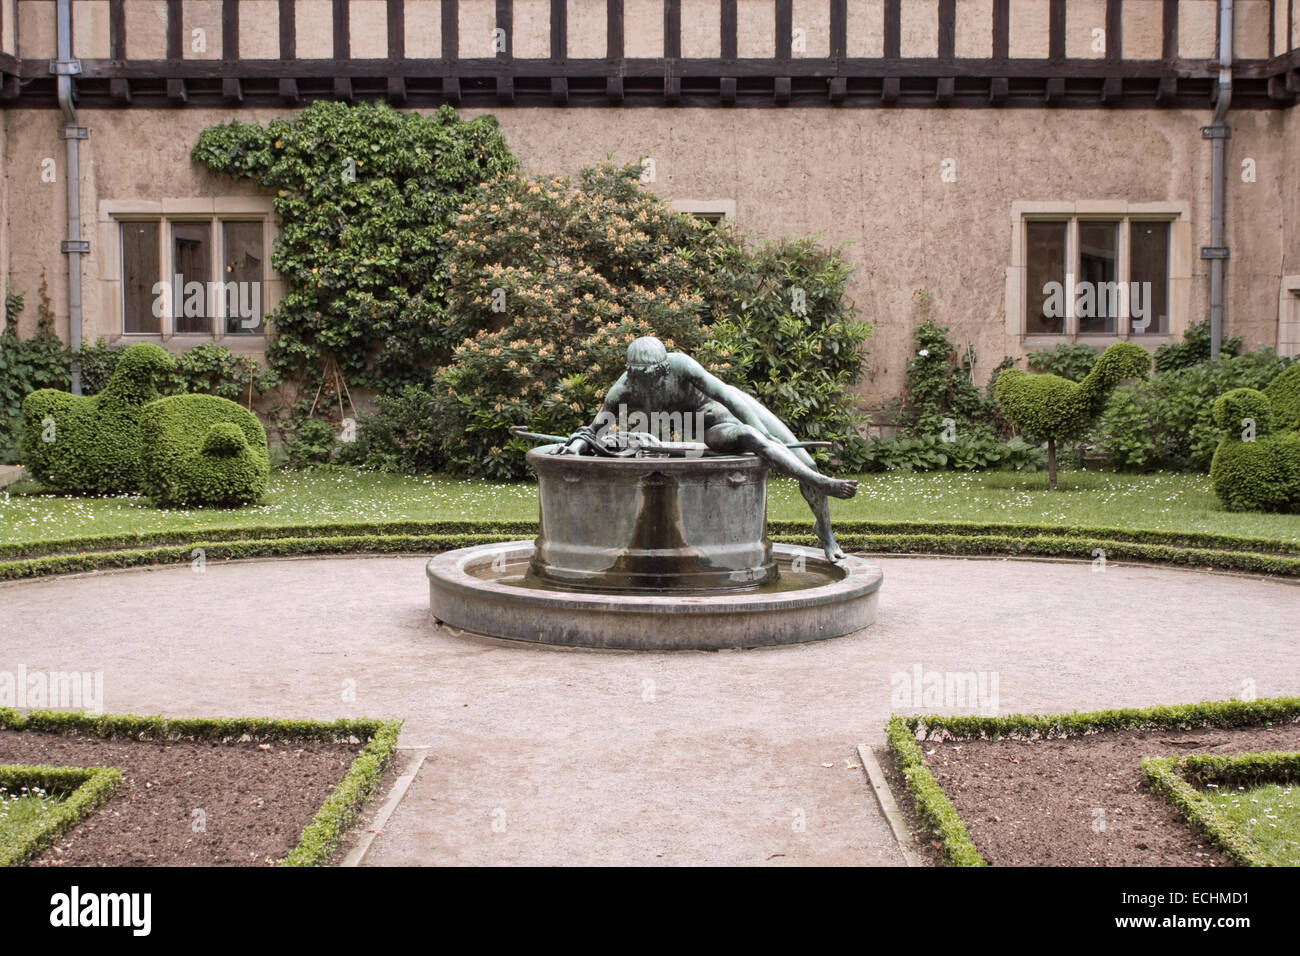 Europe, Germany, Brandenburg, Potsdam, New Garden, Cecilienhof Castle,park - Stock Image